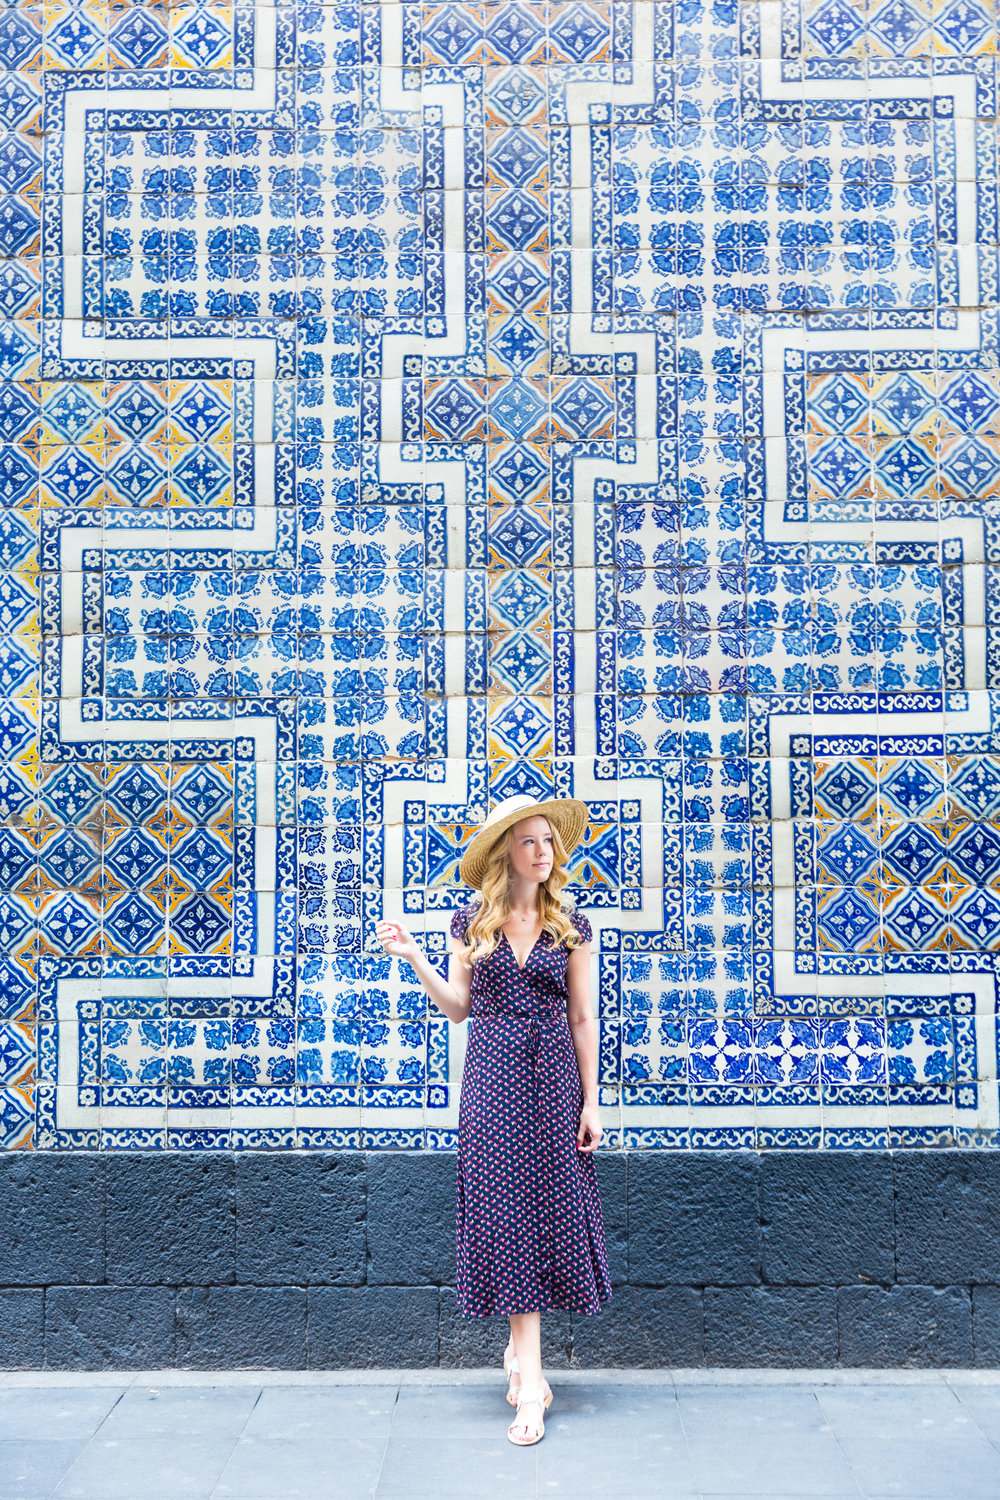 Mexico City Centro Historico Summer Outfit Pattern Wrap Dress_-3.jpg